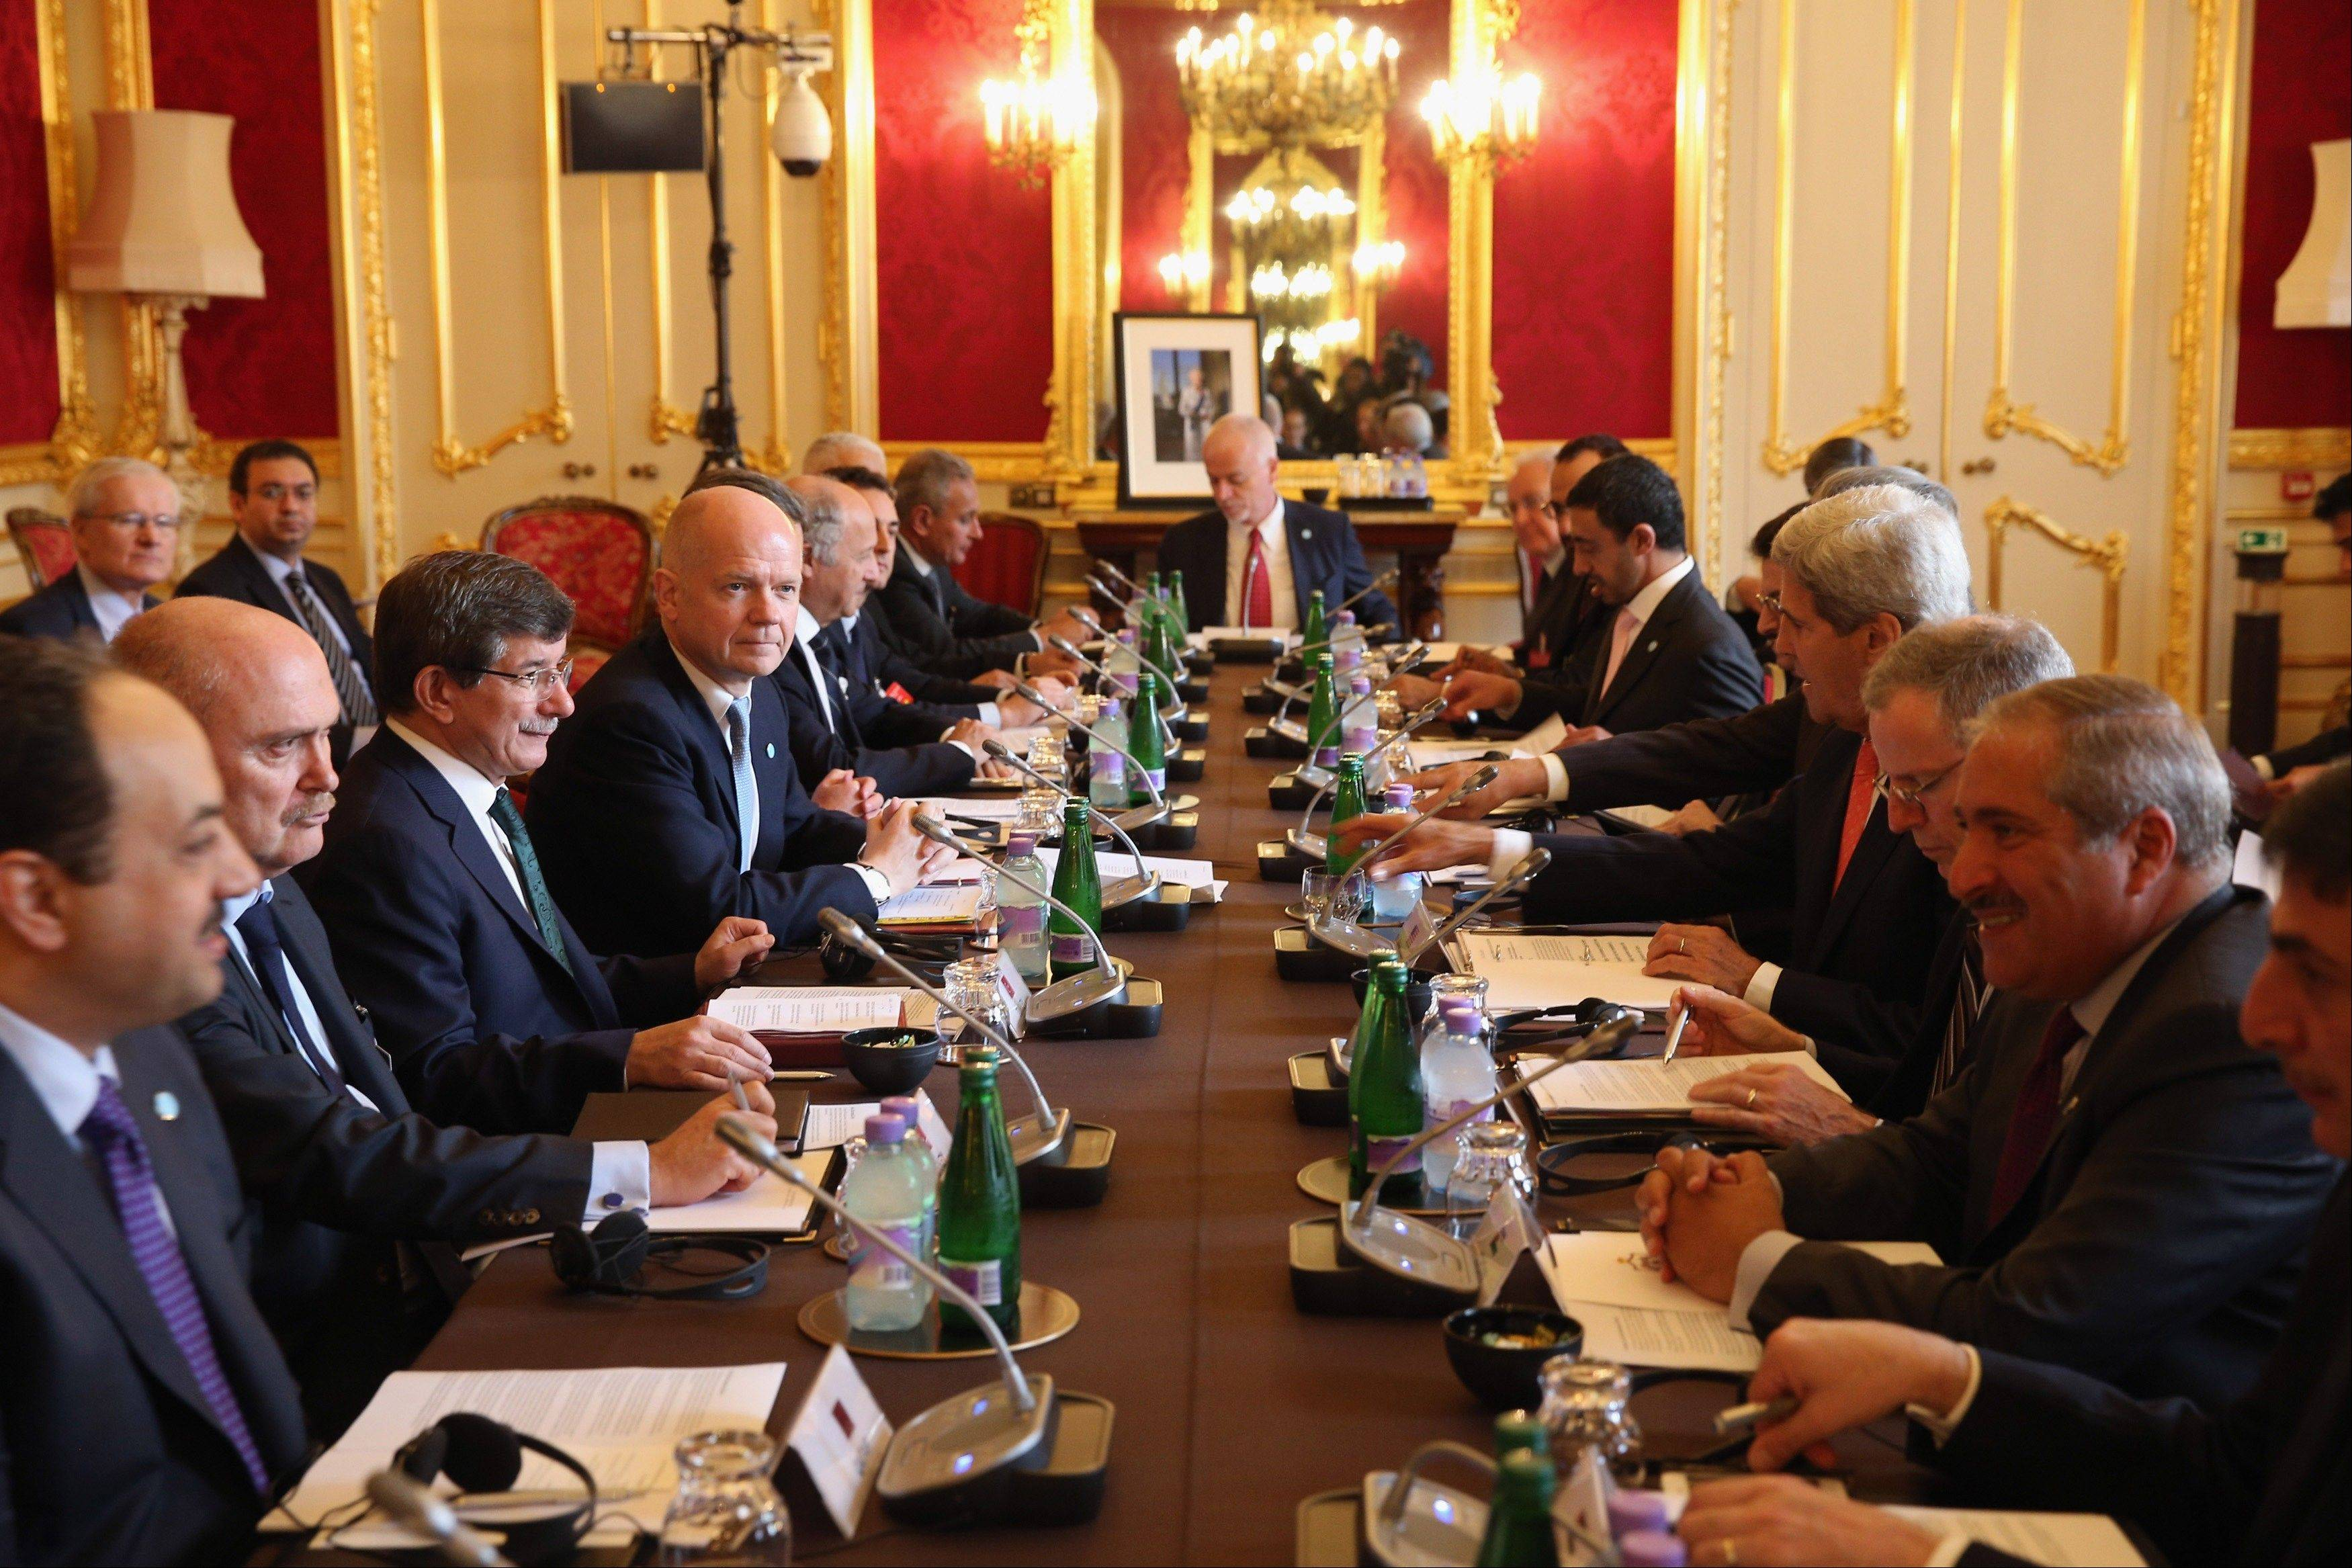 Secretary of State John Kerry, fourth from right, attends a meeting Tuesday, hosted by British Foreign Secretary William Hague, fourth from left, in London, aimed at ending the civil war in Syria.